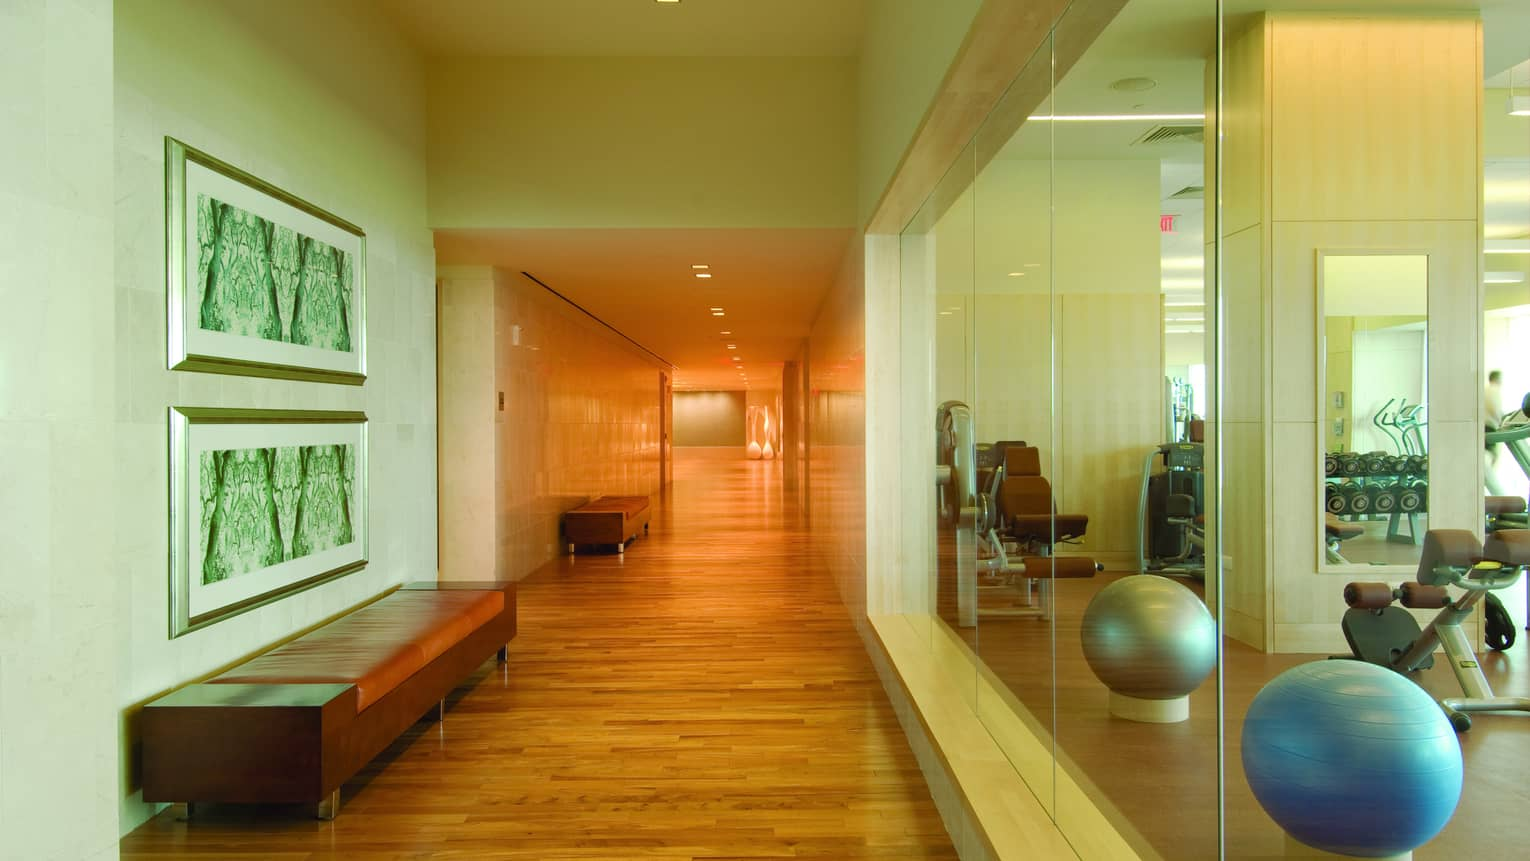 Fitness centre hallway and glass window view of cardio machines and two exercise balls